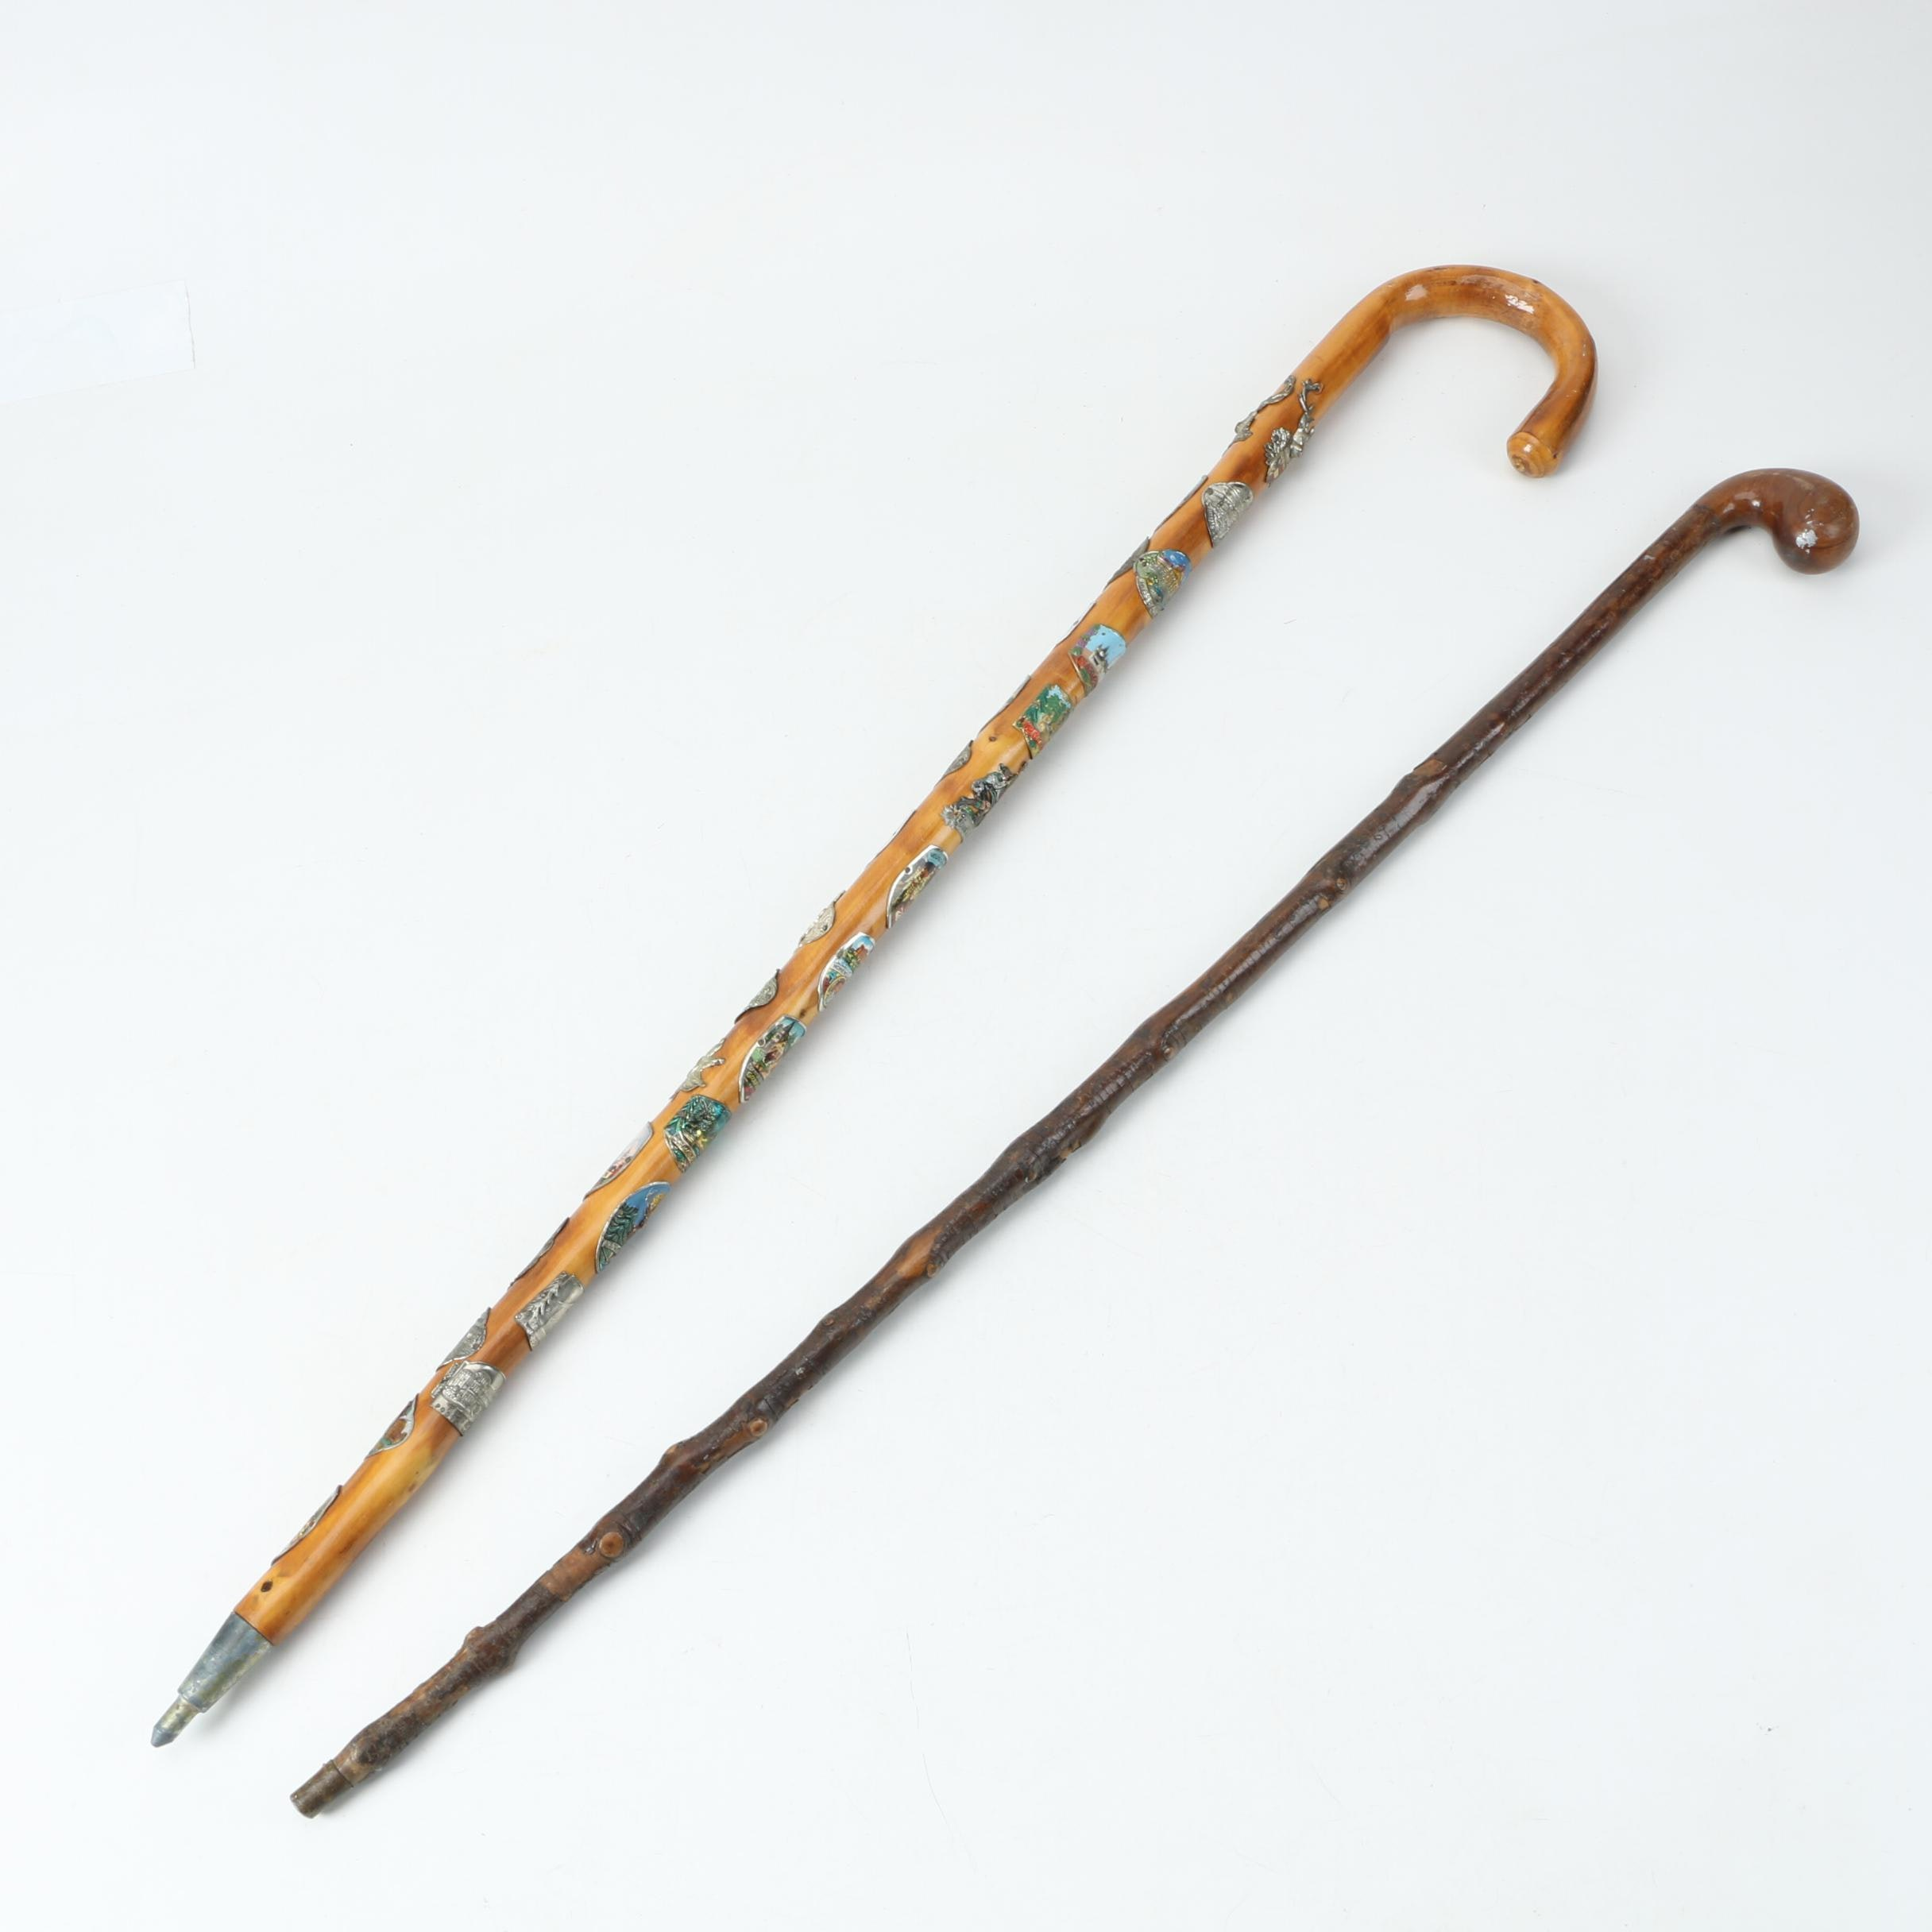 Pair of Wooden Canes Including German and Austrian Landmark Crook-Handled Cane